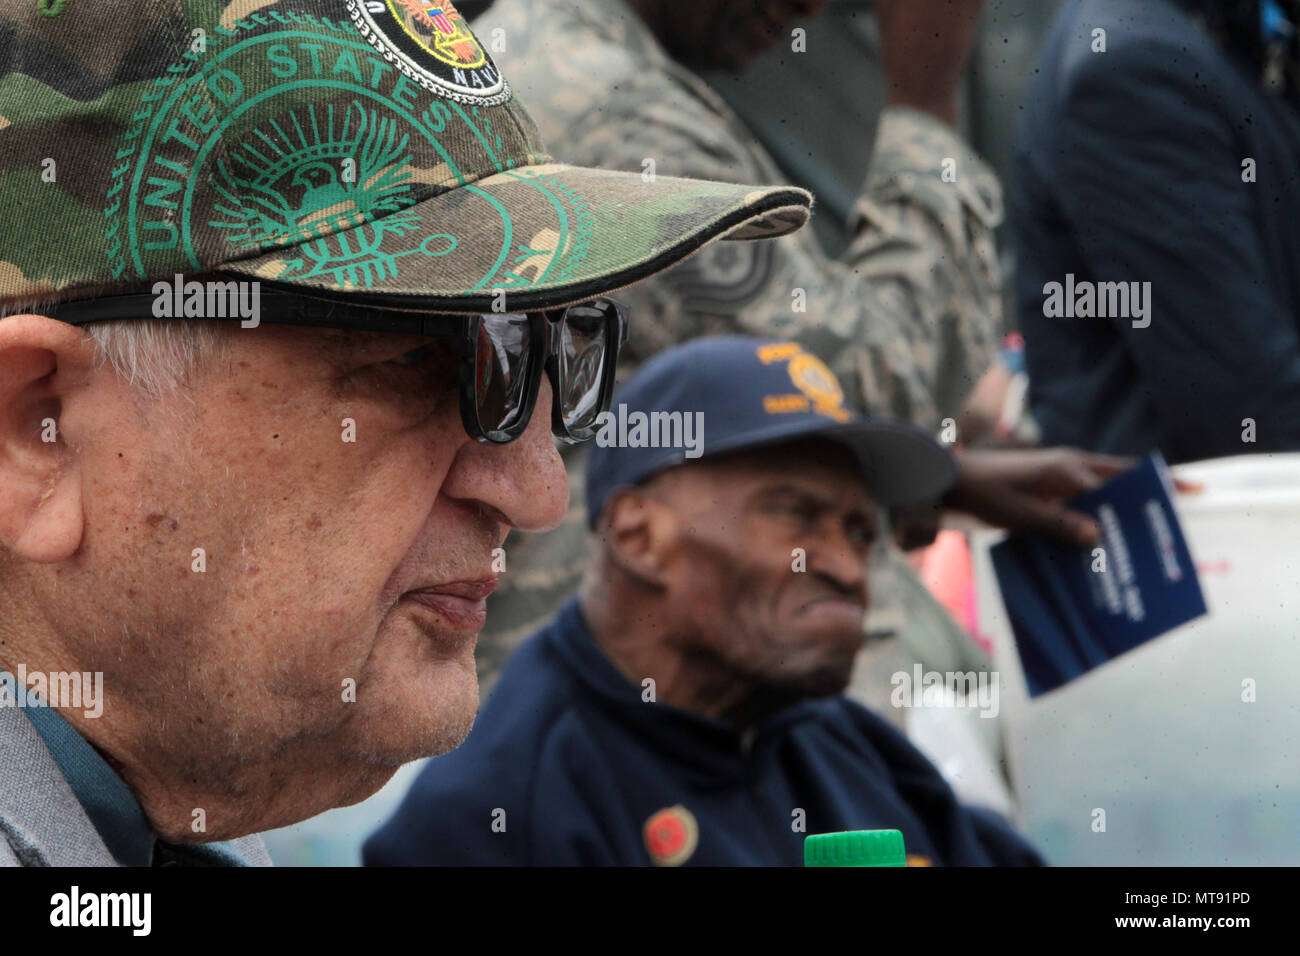 New York, NY, USA. 28th May, 2018. United States War Veterans attend the 2018 Memorial Day Ceremony held aboard the U.S.S Intrepid Sea, Air, Space Museum Complex on May 28, 2018 in New York City. Credit: Mpi43/Media Punch/Alamy Live News - Stock Image